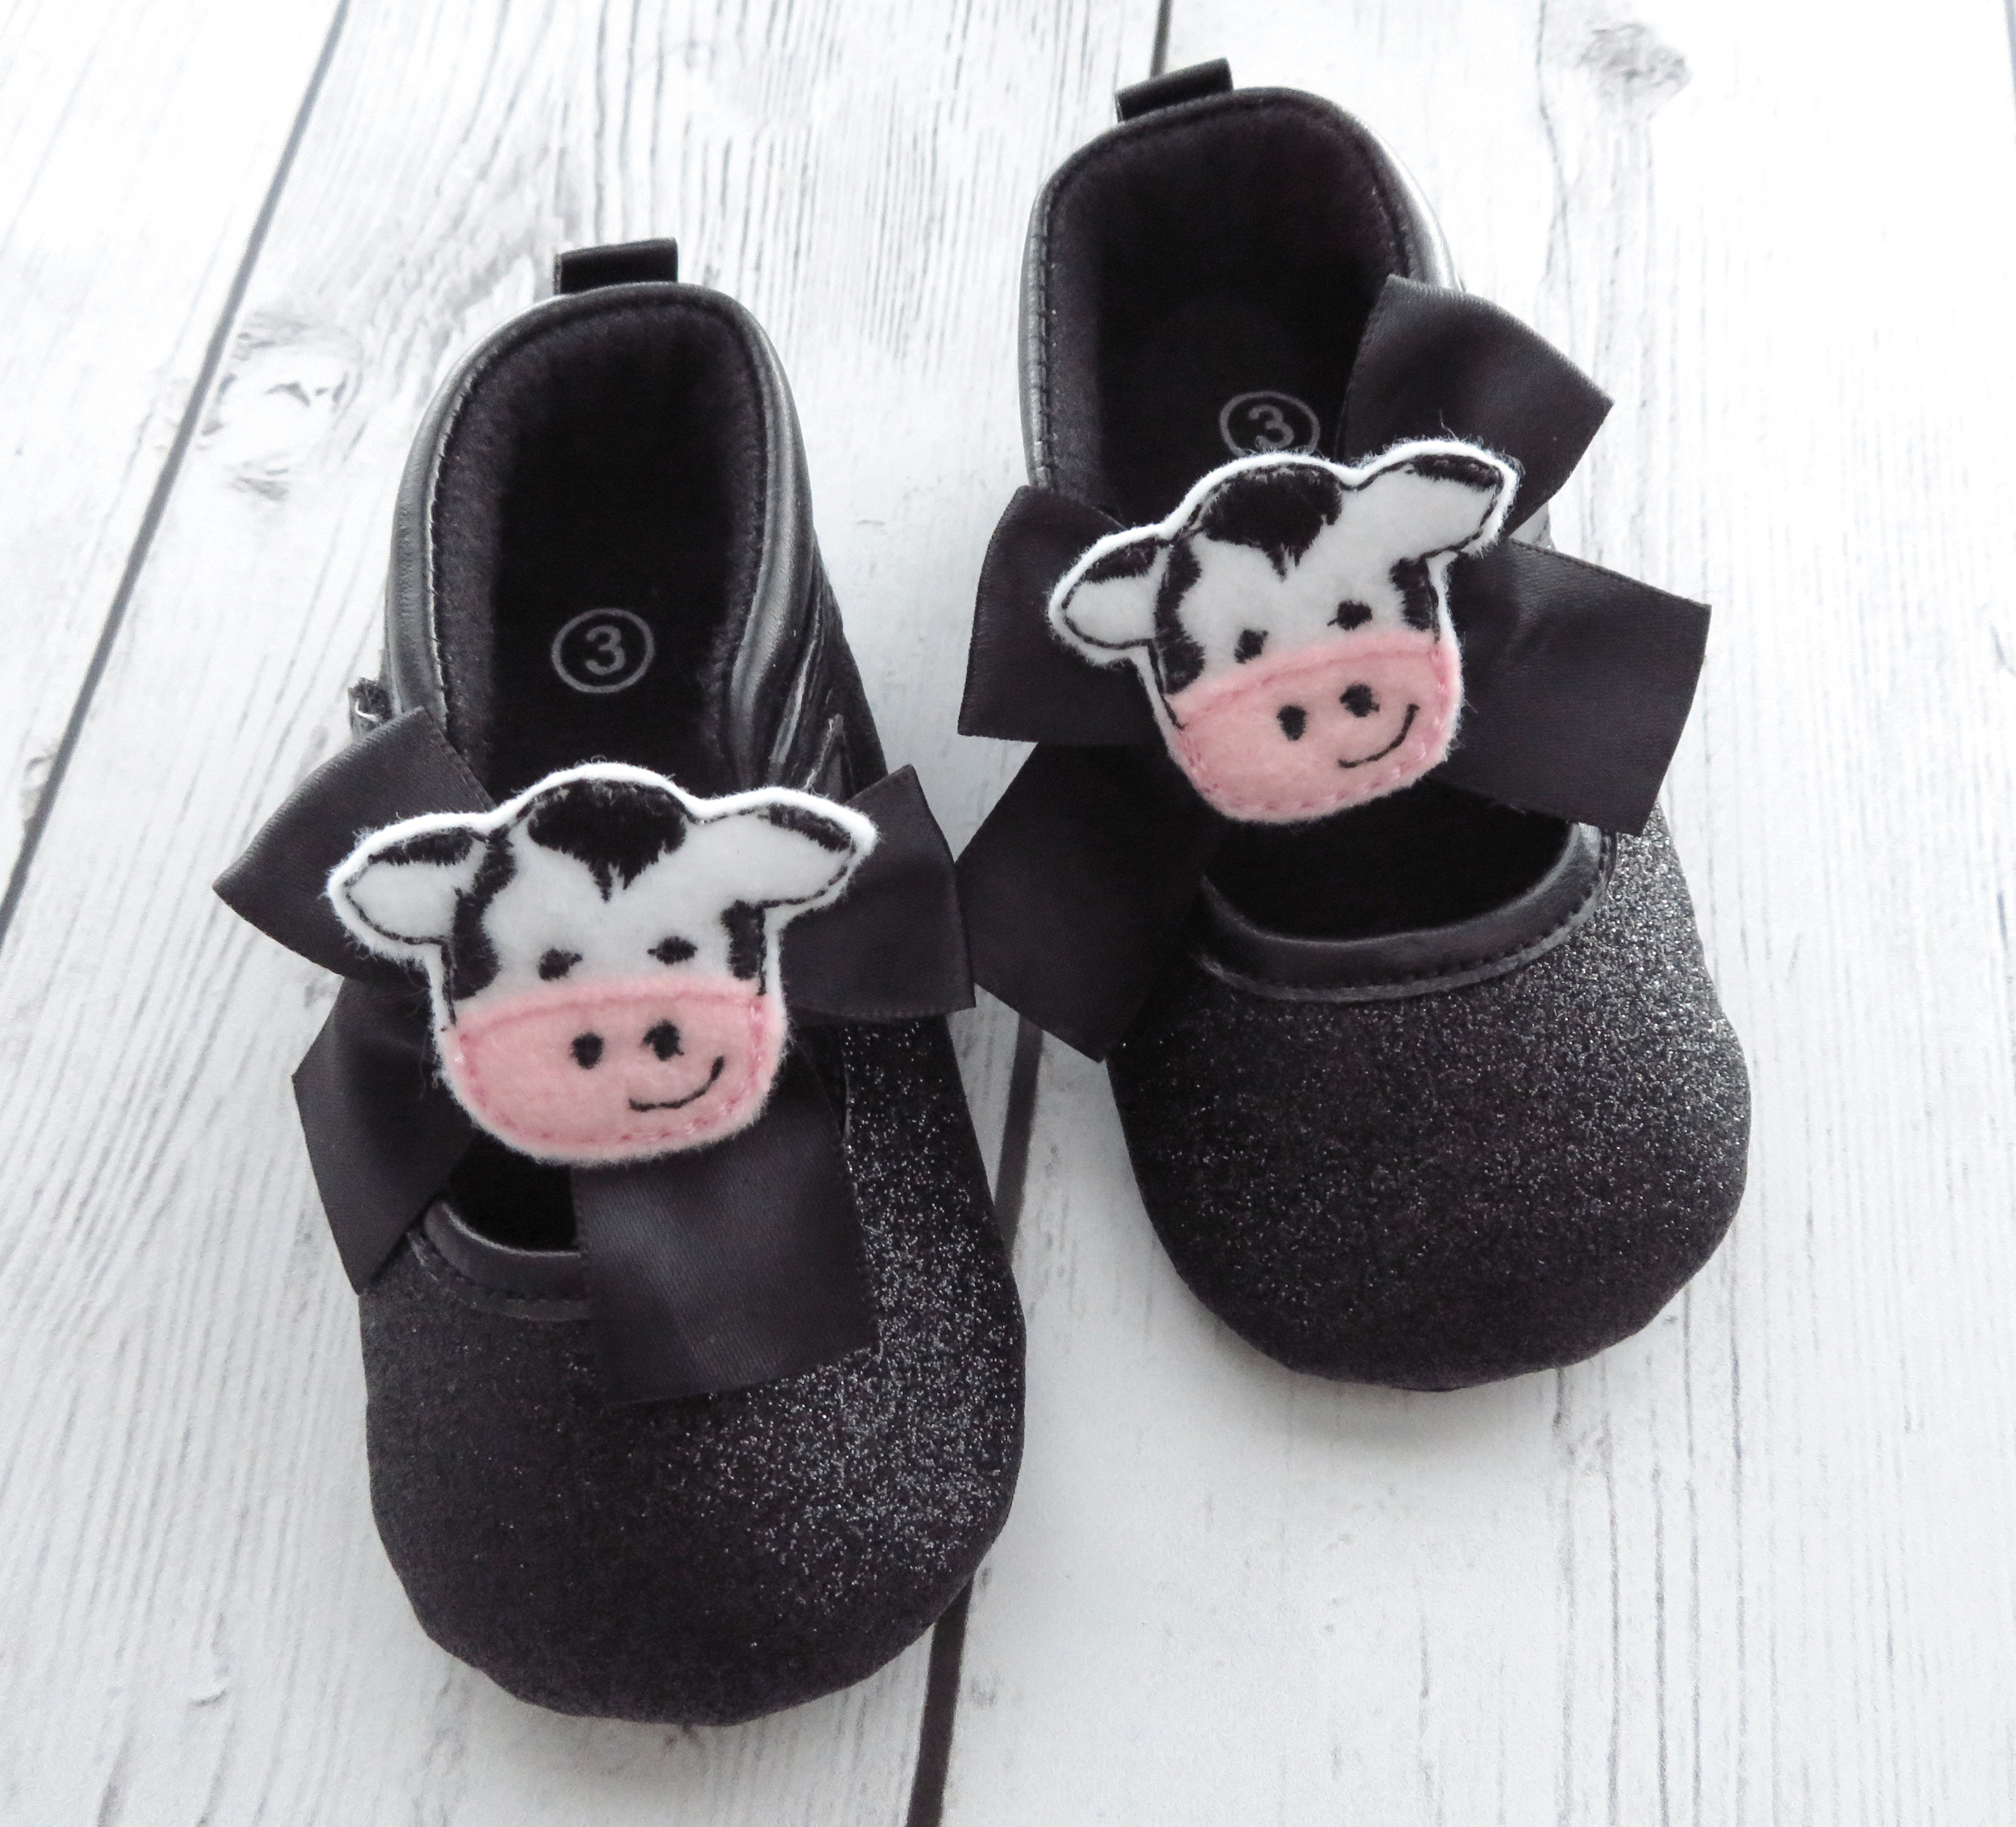 CLEARANCE SALE - Cow First Birthday Shoes -first walkers, first birthday shoes, soft sole shoes, cow 1st bday shoes, barnyard first birthday